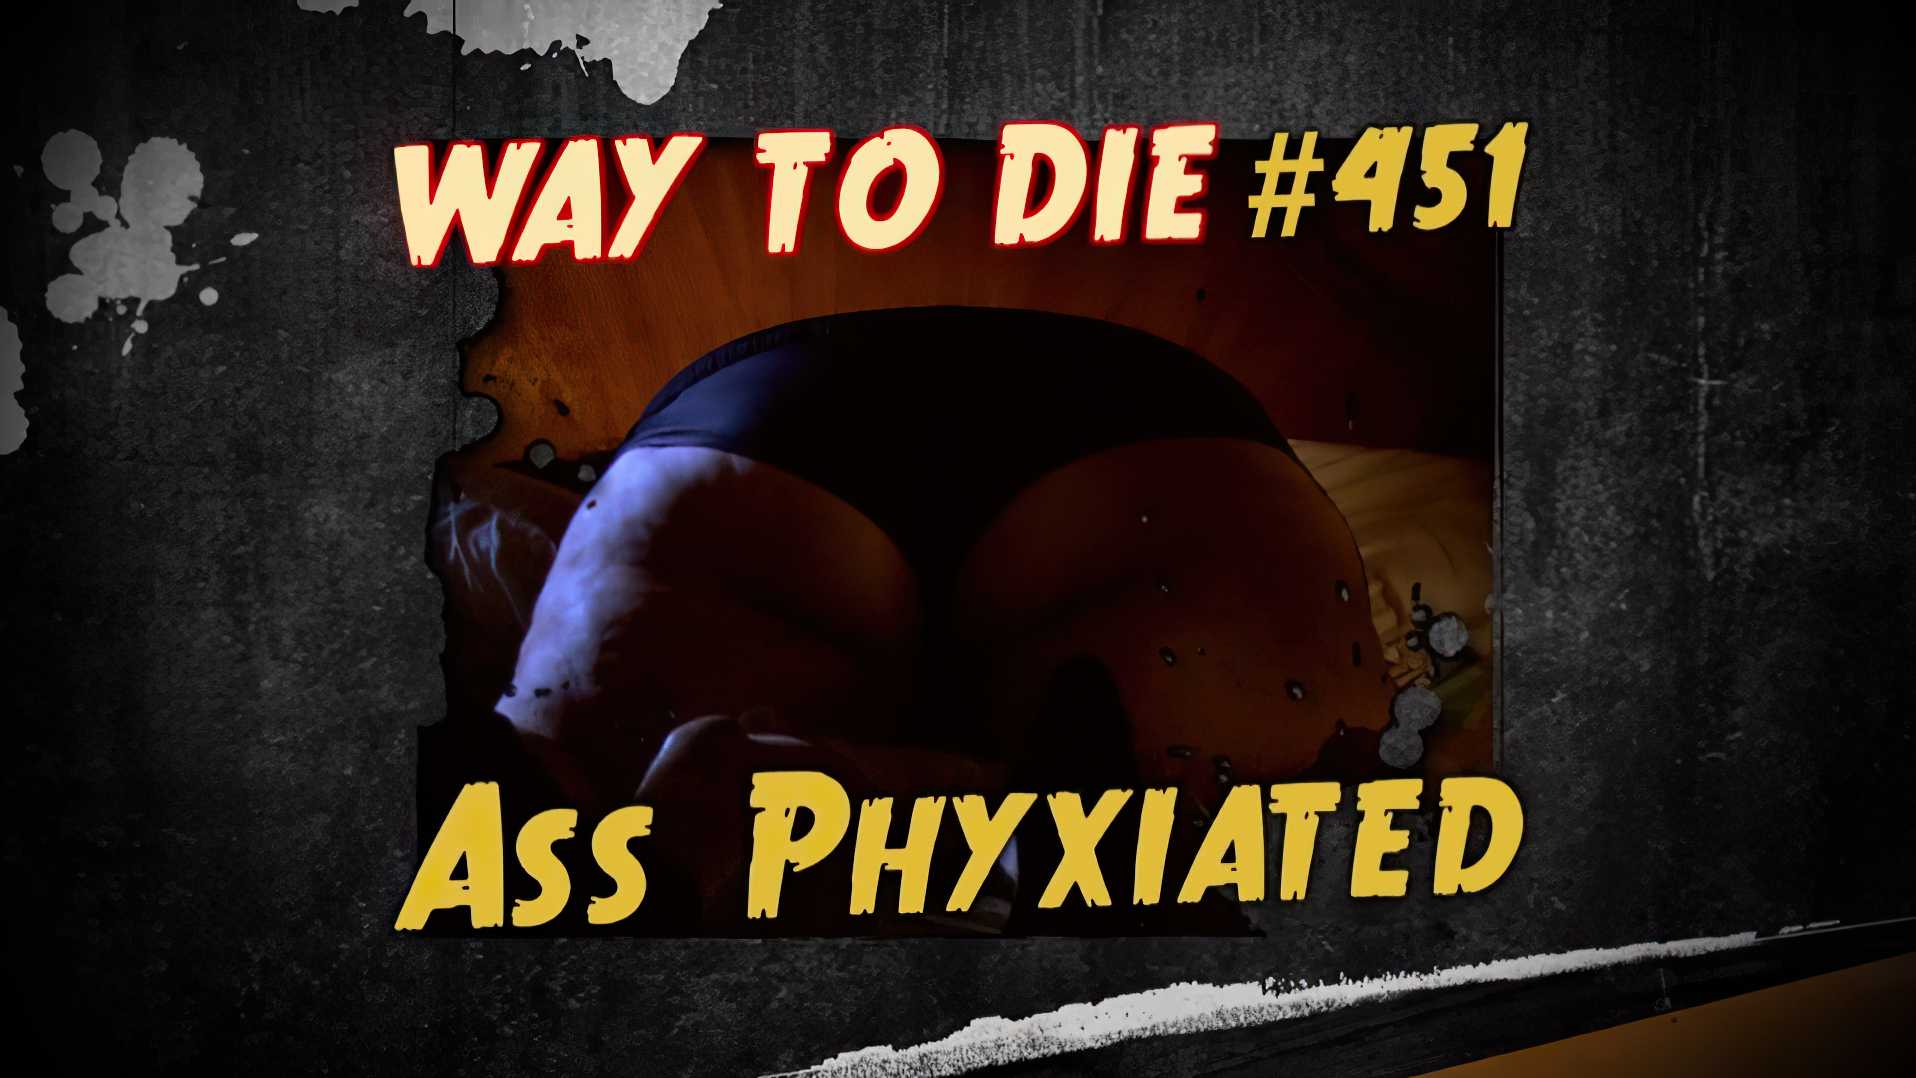 Ass Phyxiated